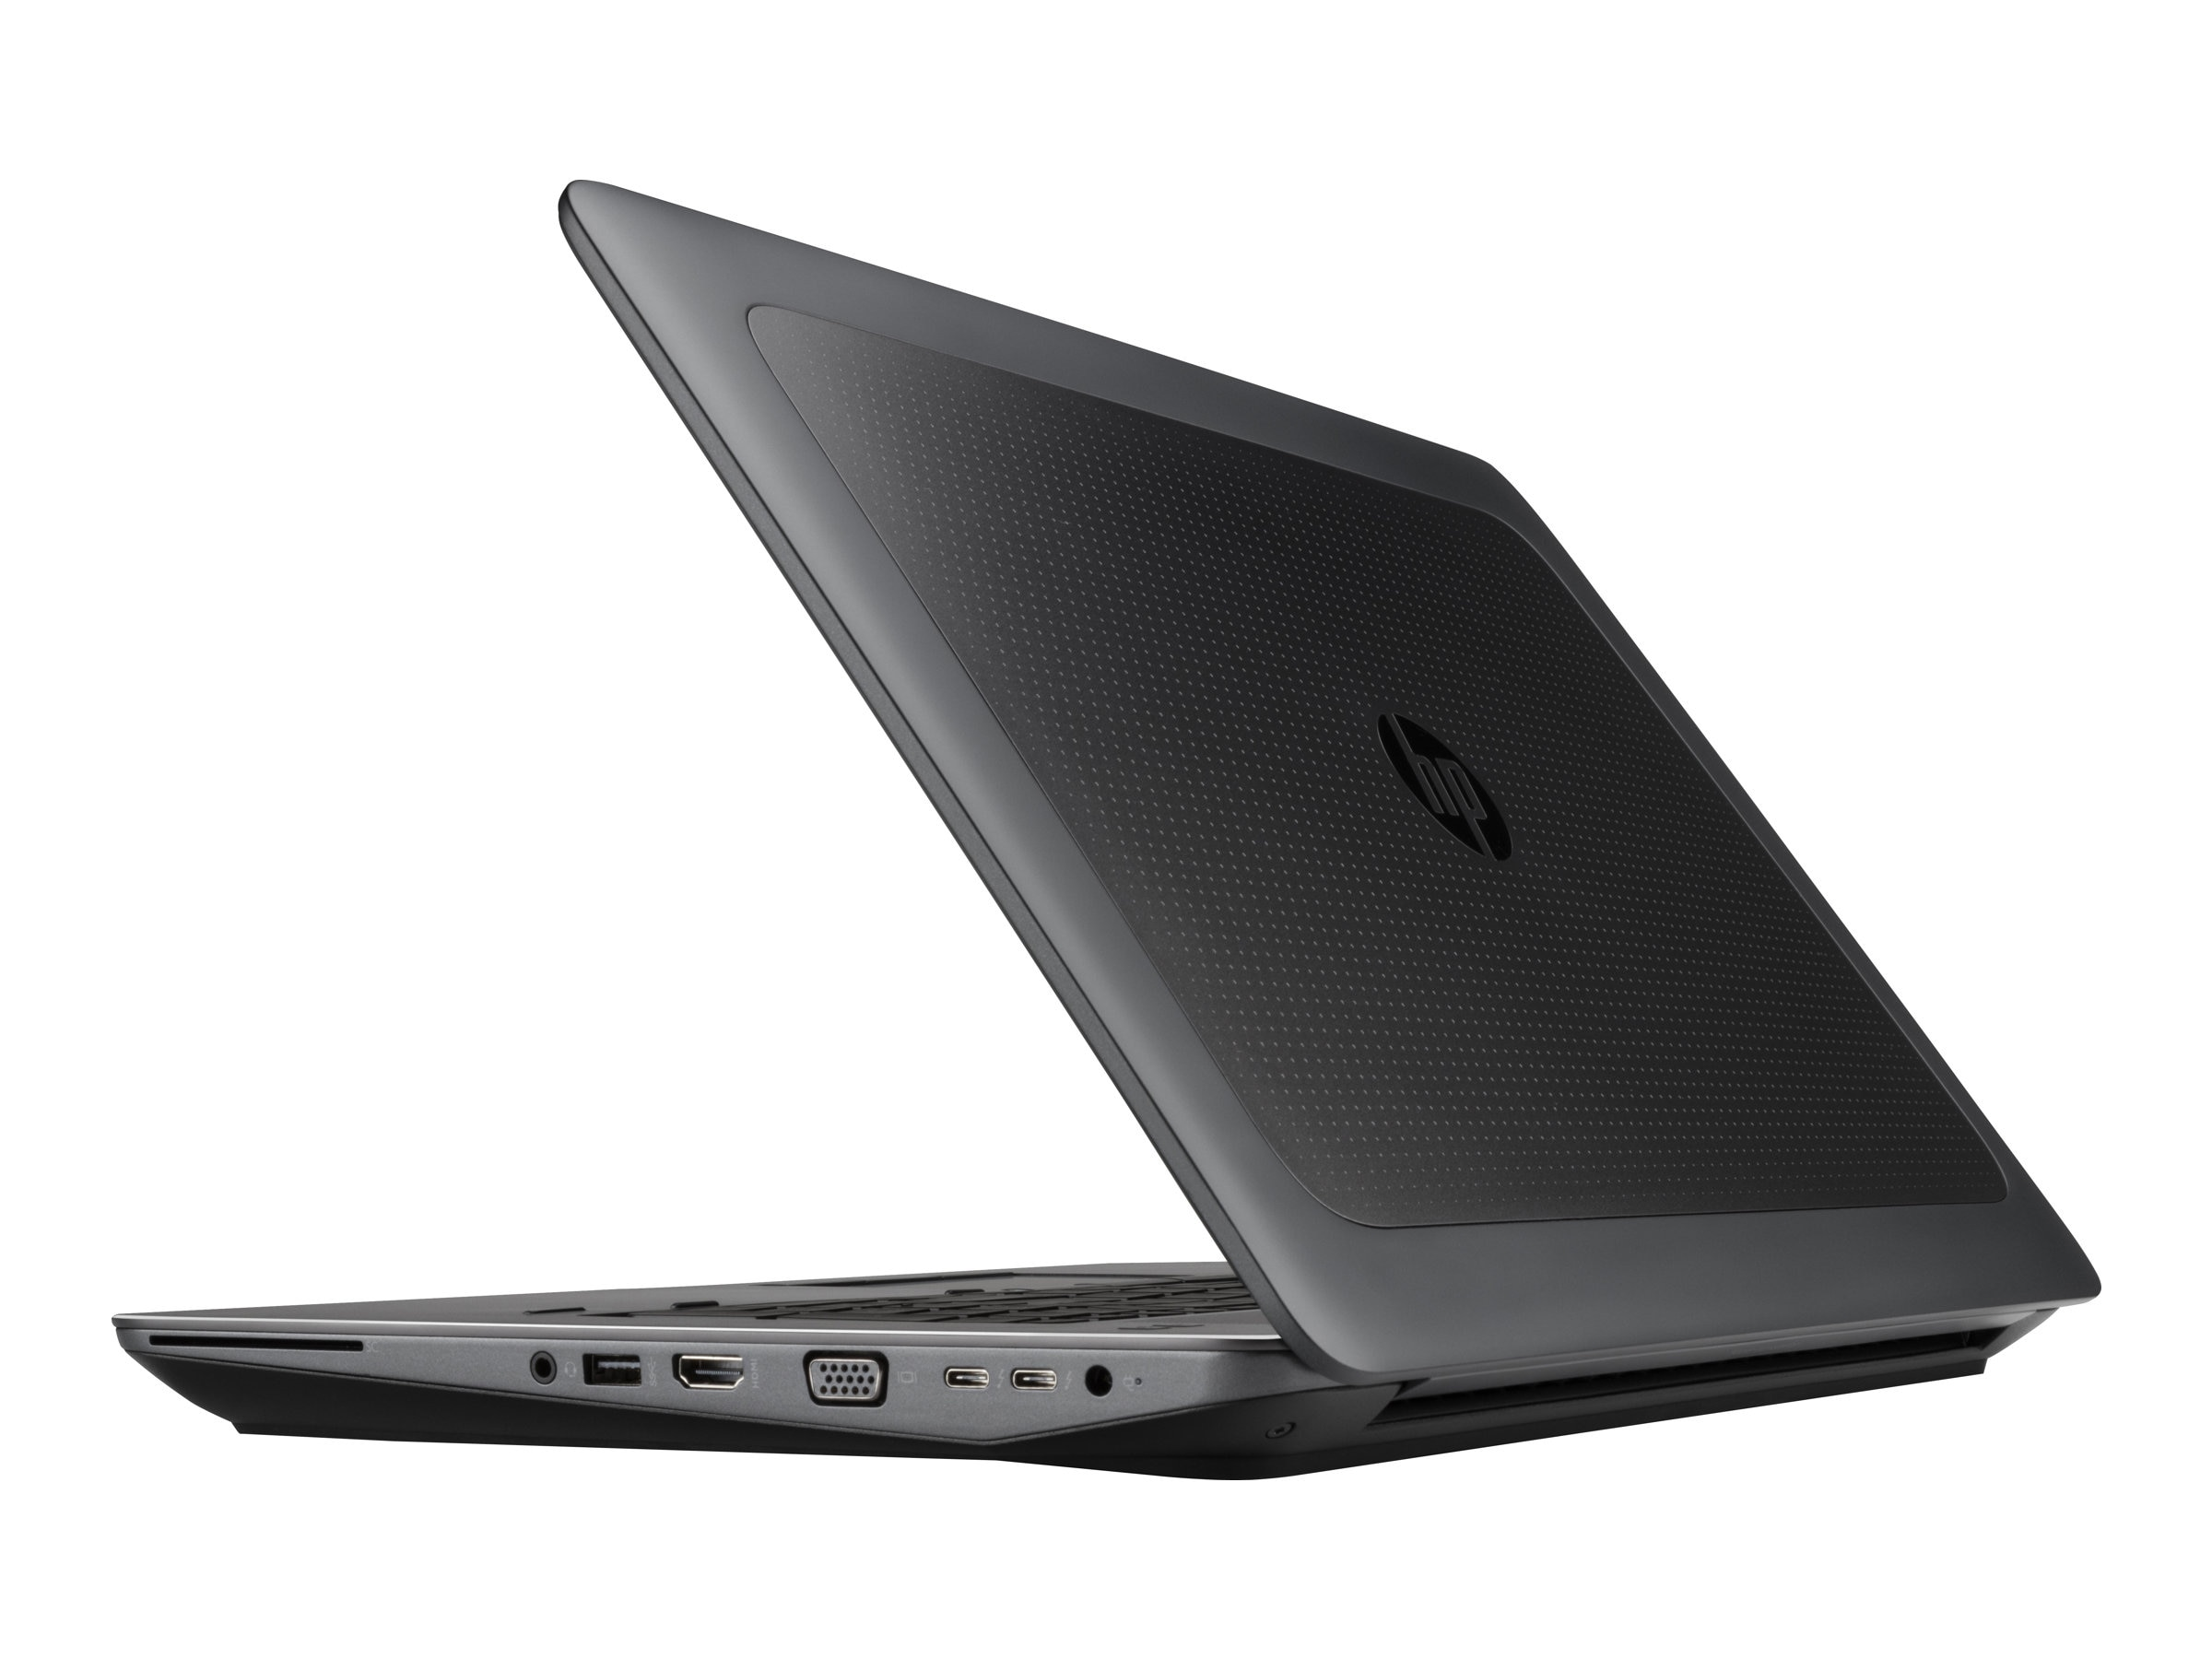 HP ZBook 17 G3 Core i7-6700HQ 2.6GHz 8GB 500GB ac BT FR WC 6C 17.3 HD+ W7P64-W10P, V1Q00UT#ABA